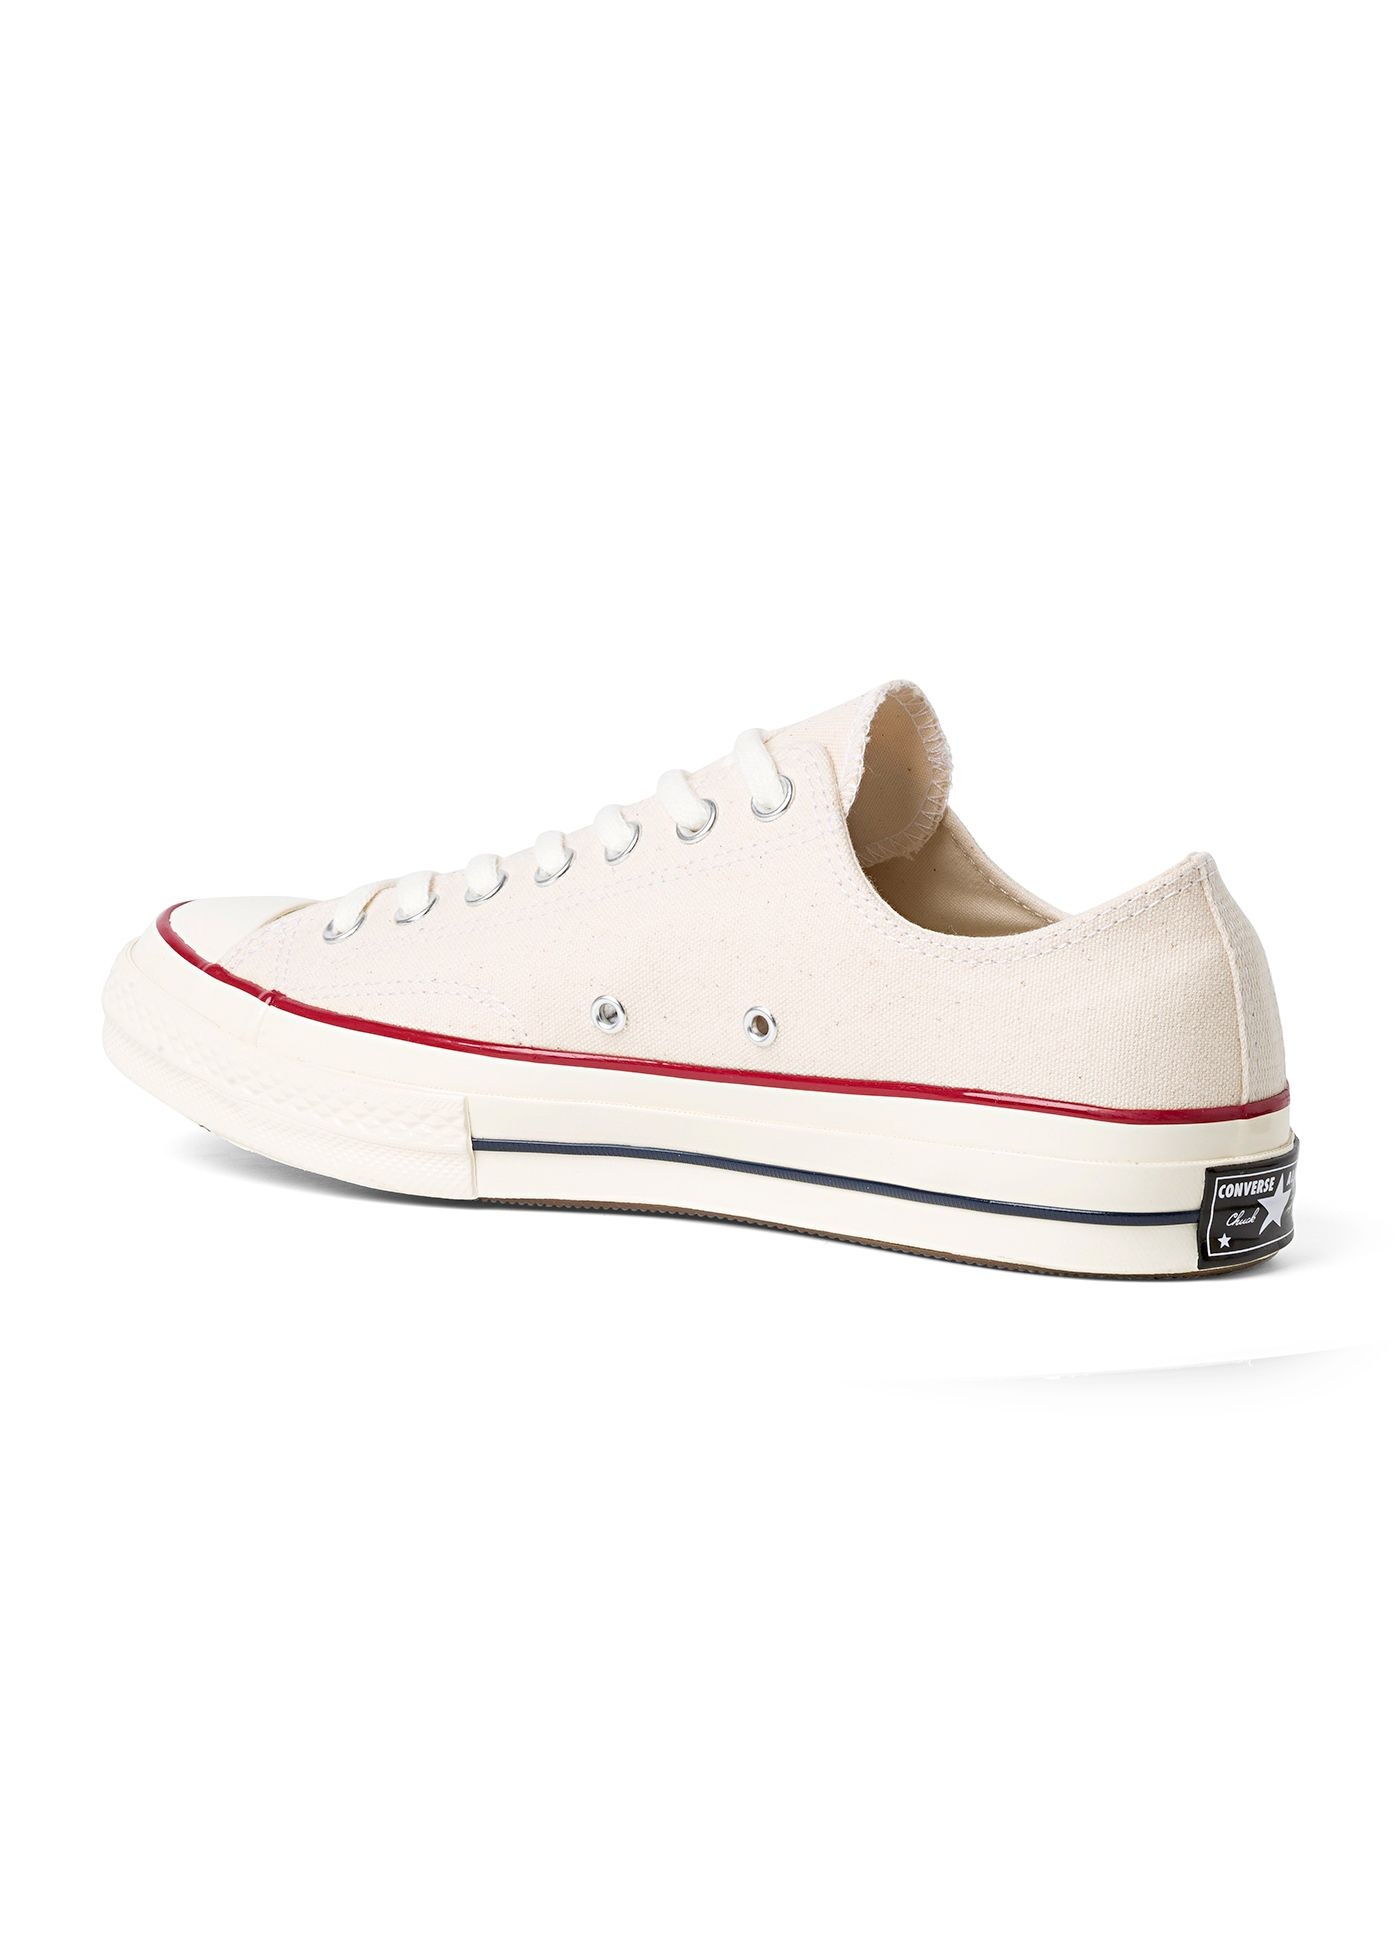 CHUCK 70 OX image number 2